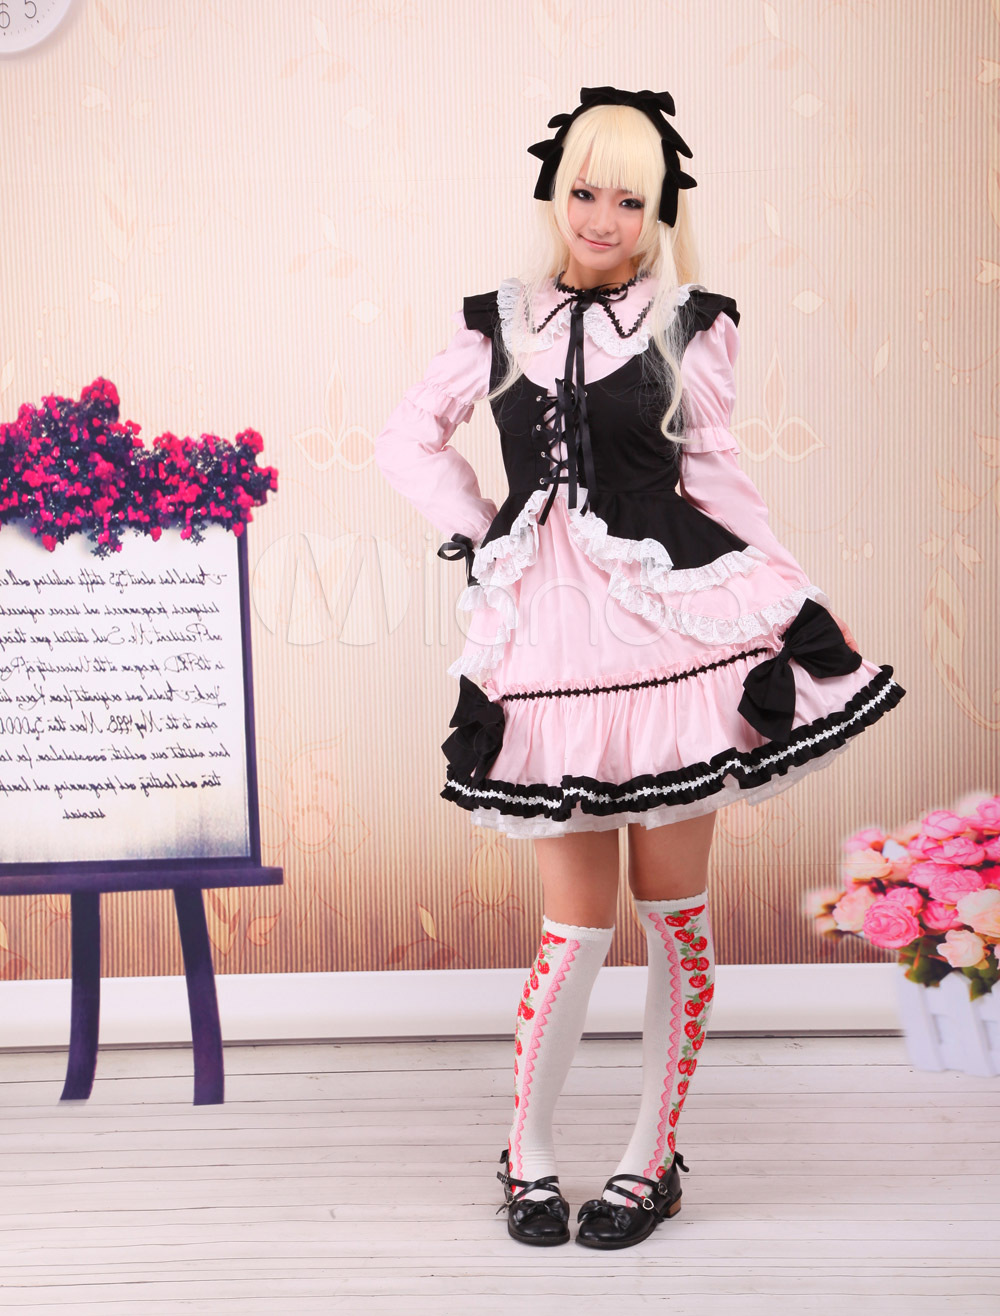 Free shipping! New Arrivals! High quality! Cotton Long Sleeves Ruffles Cosplay Lolita Dress